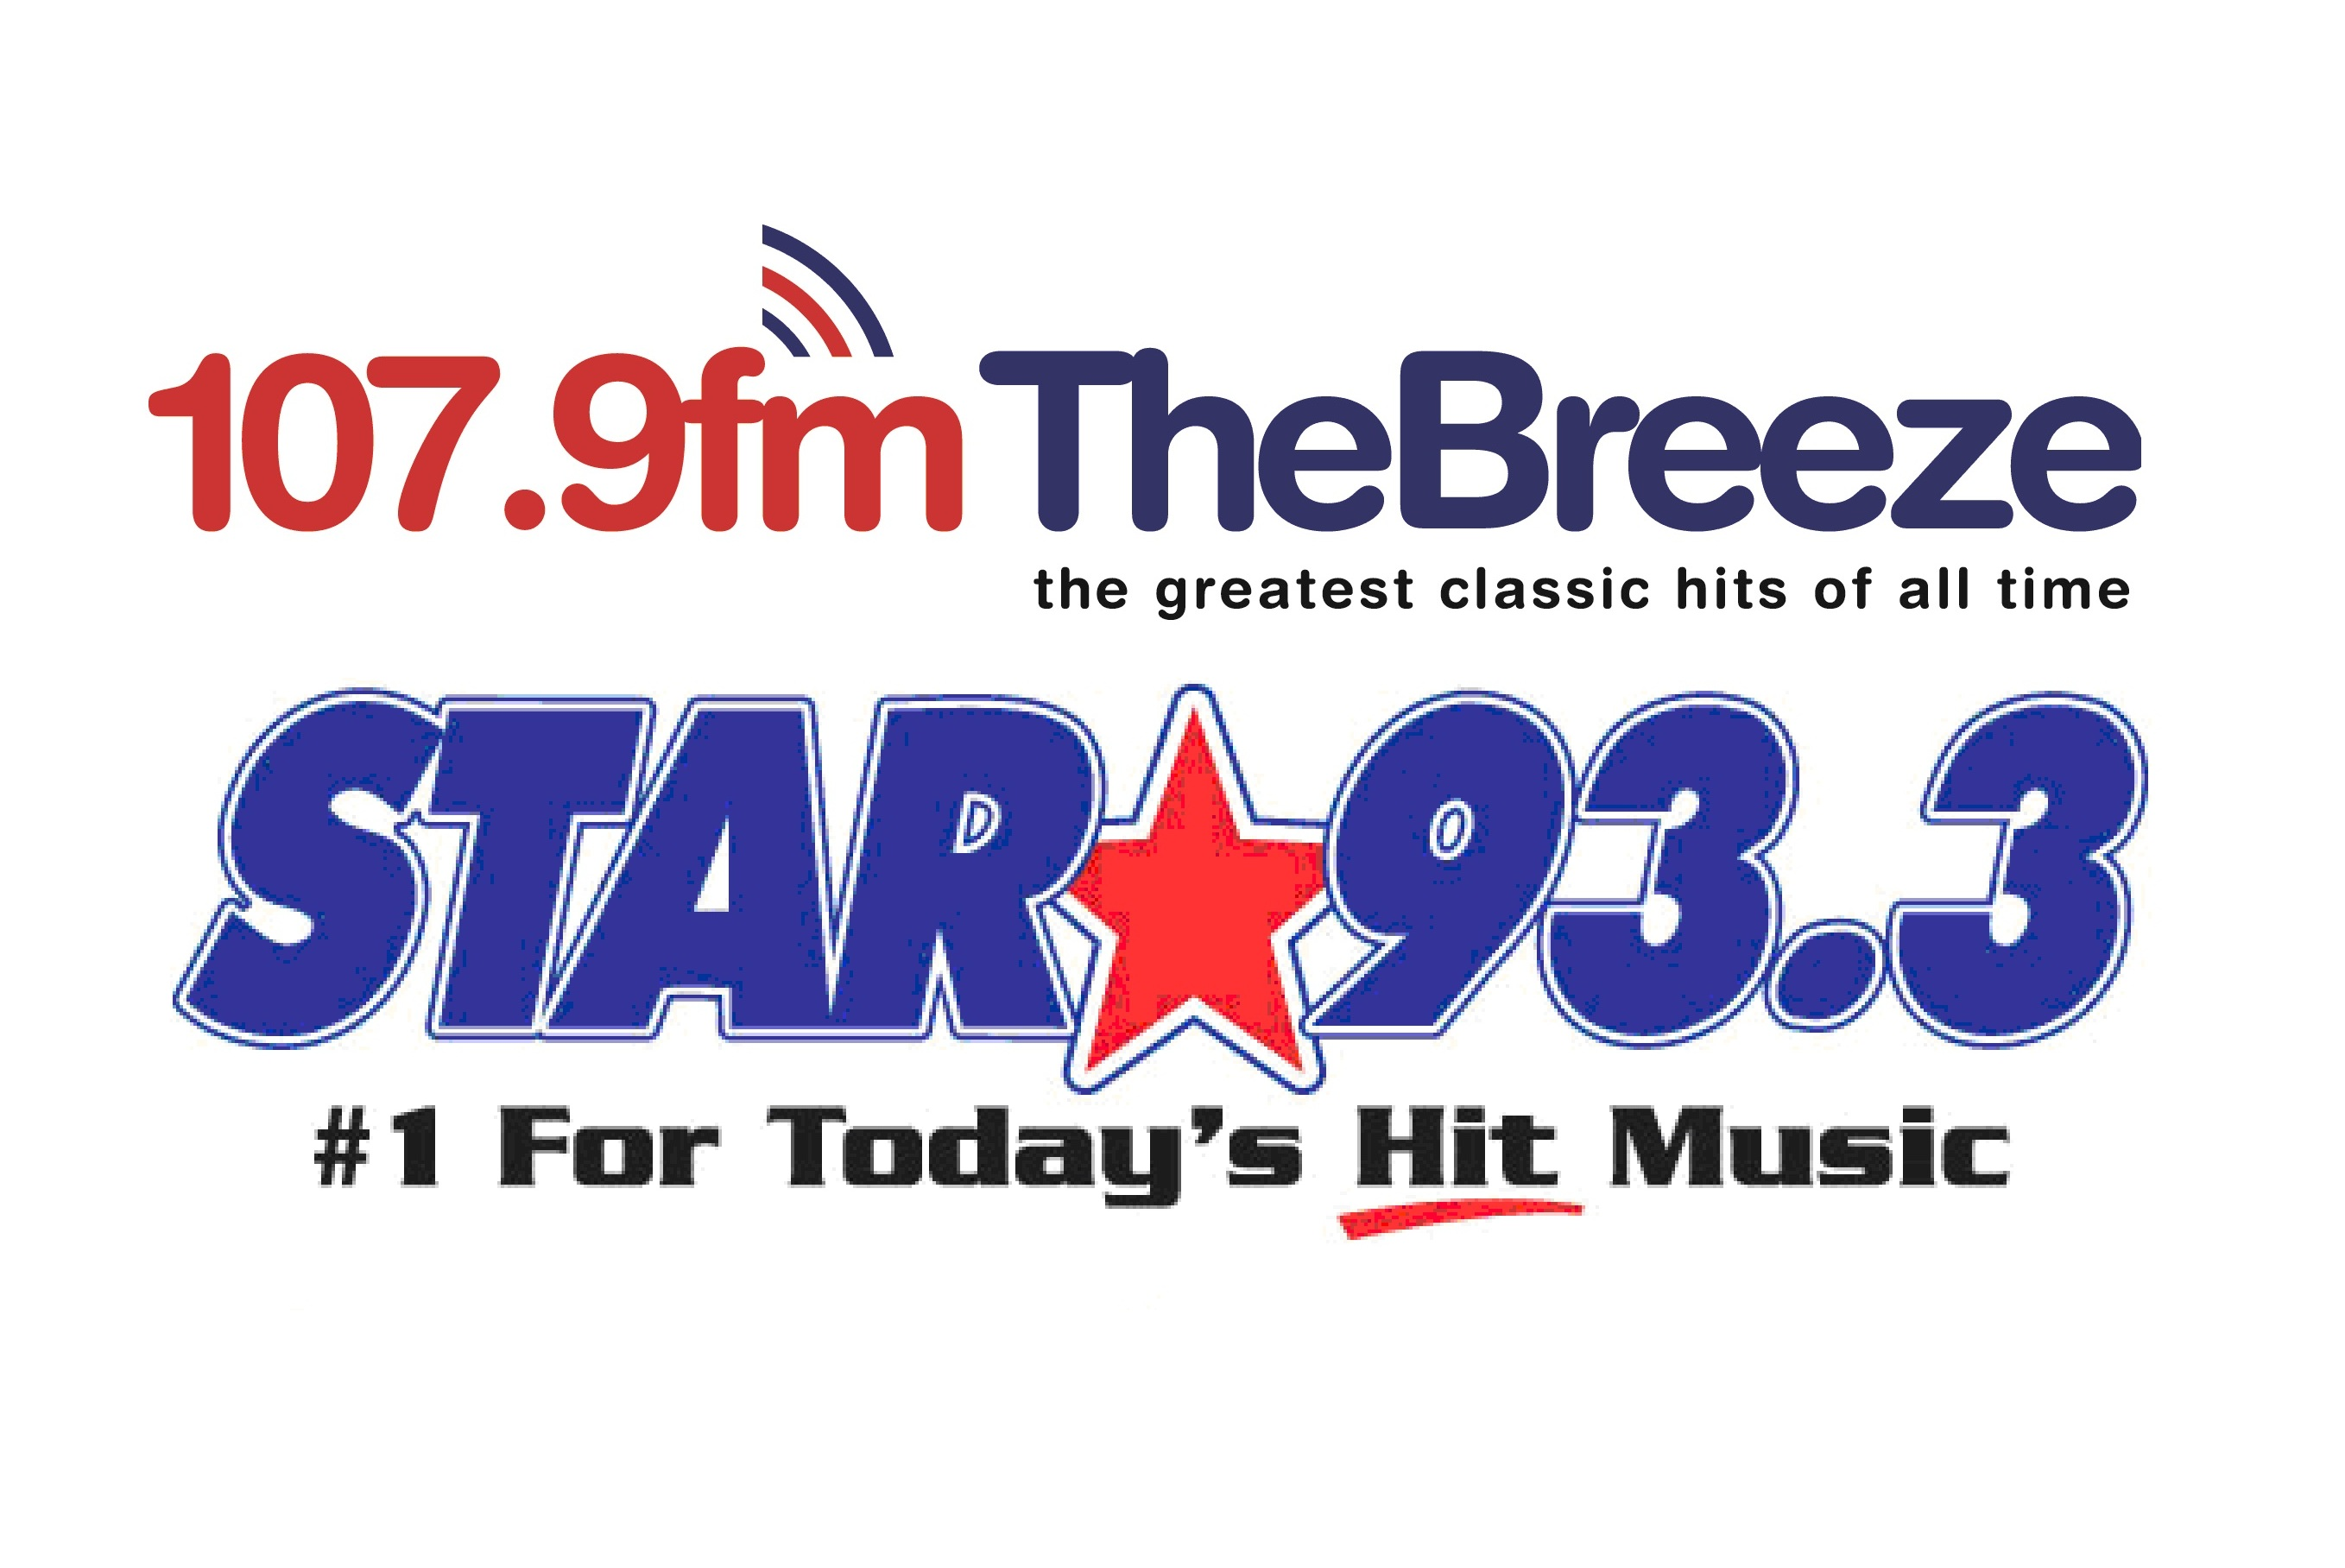 107.9 The Breeze